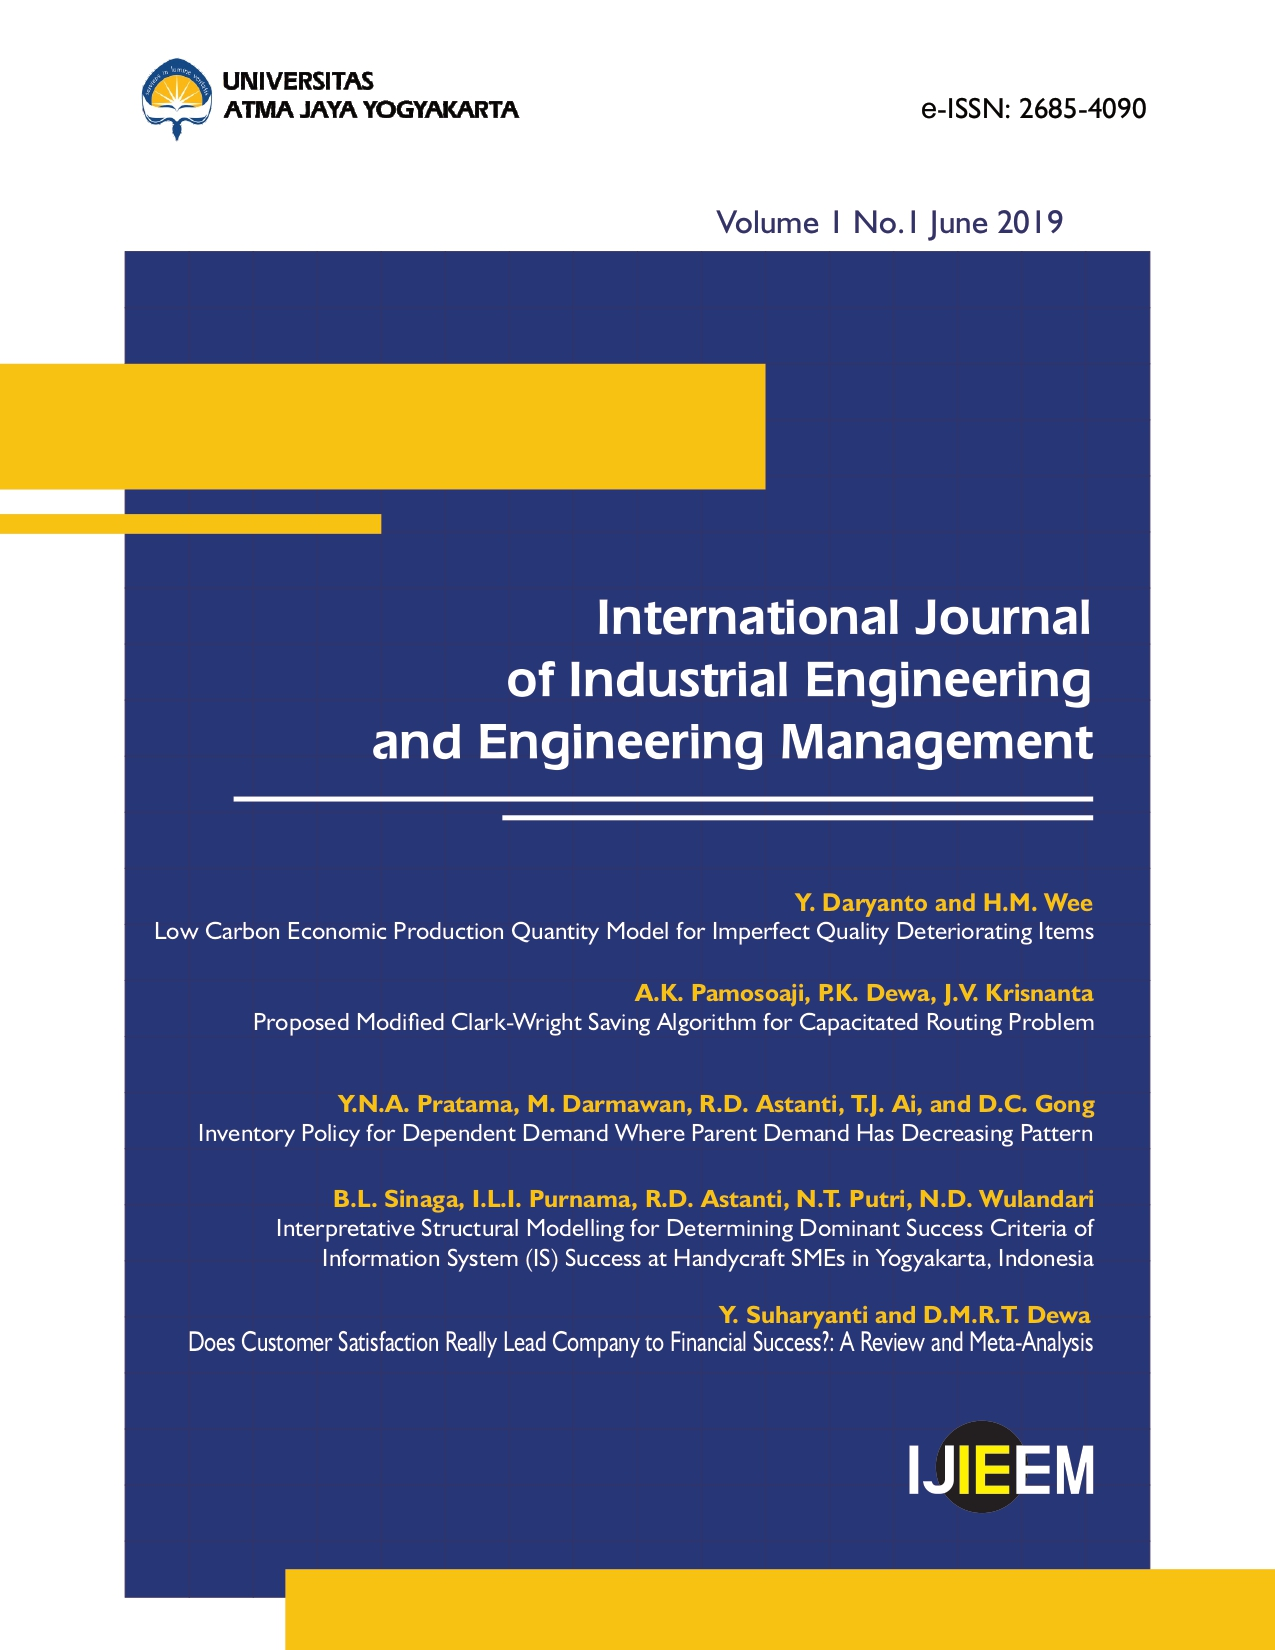 IJIEEM COVER 2